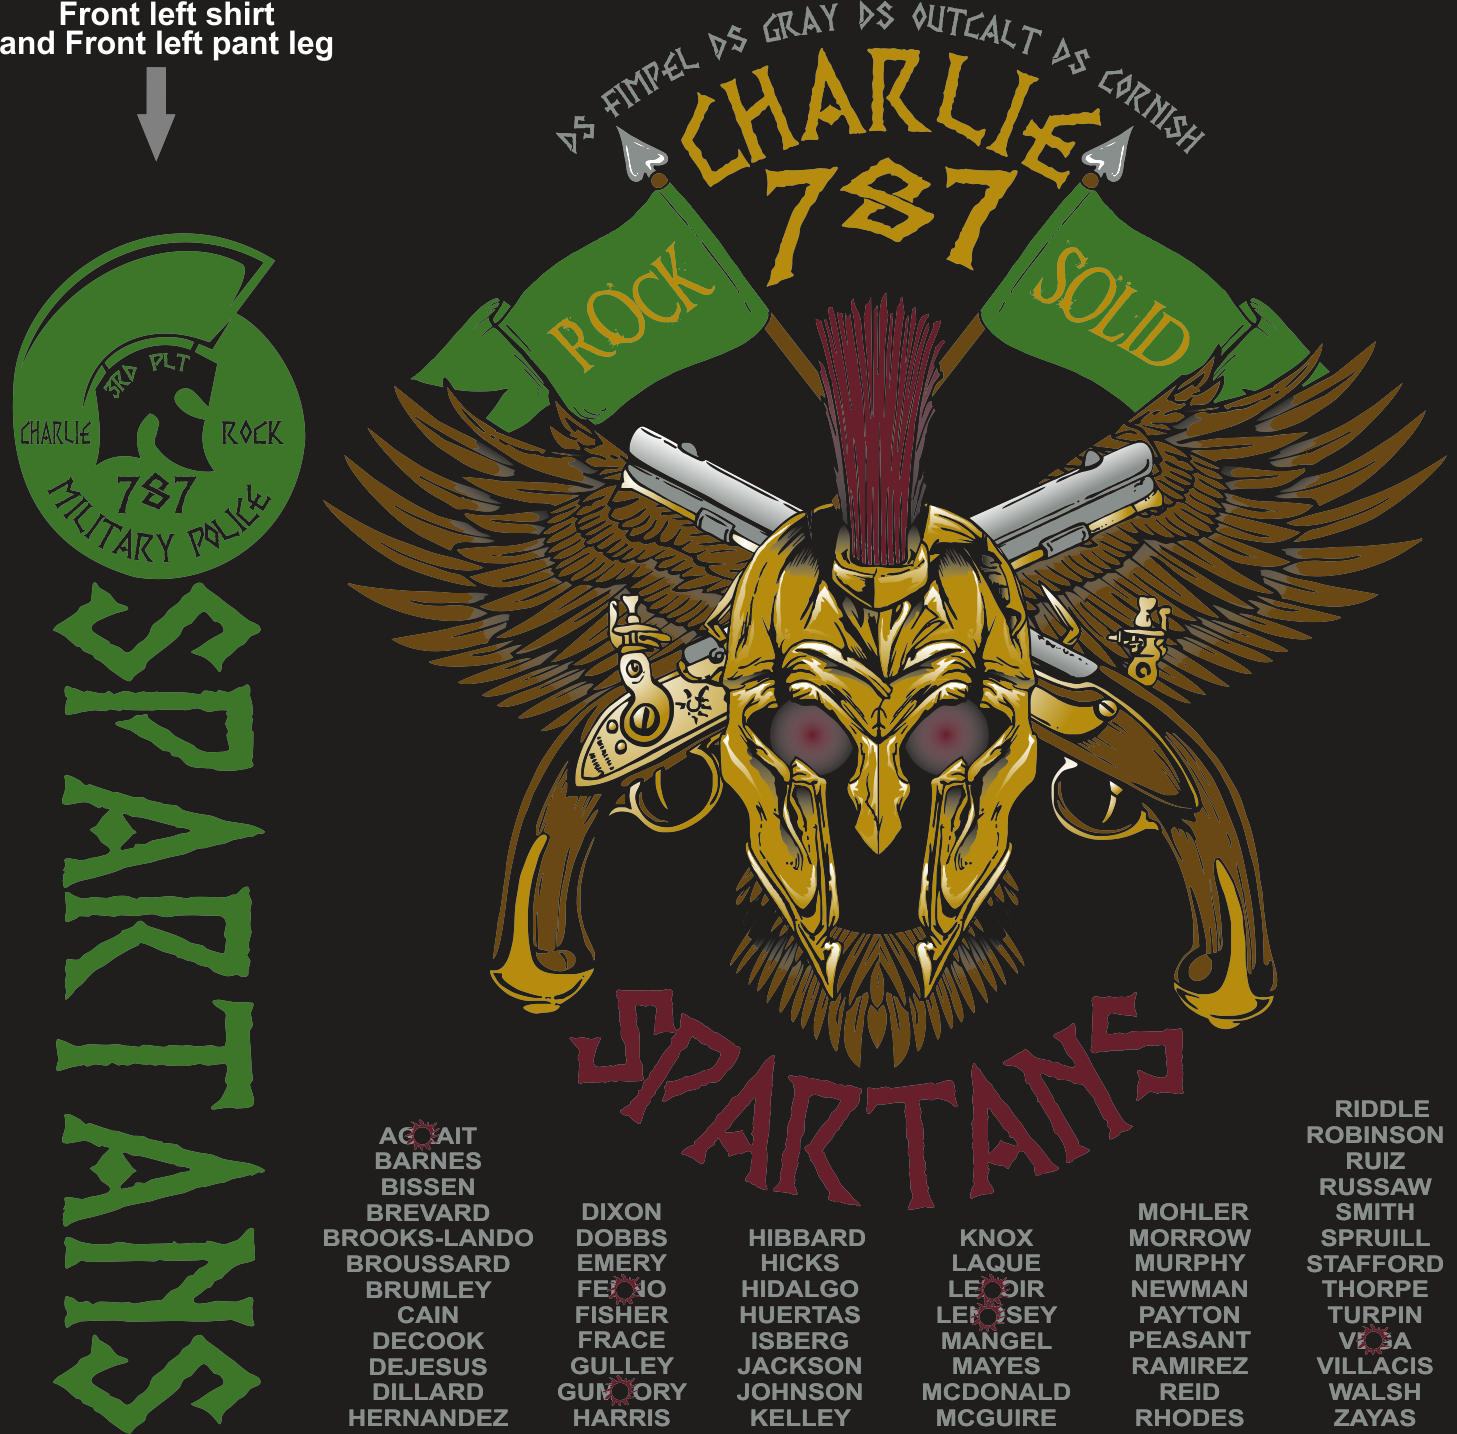 CHARLIE 787 SPARTANS GRADUATING DAY 8-25-2016 digital